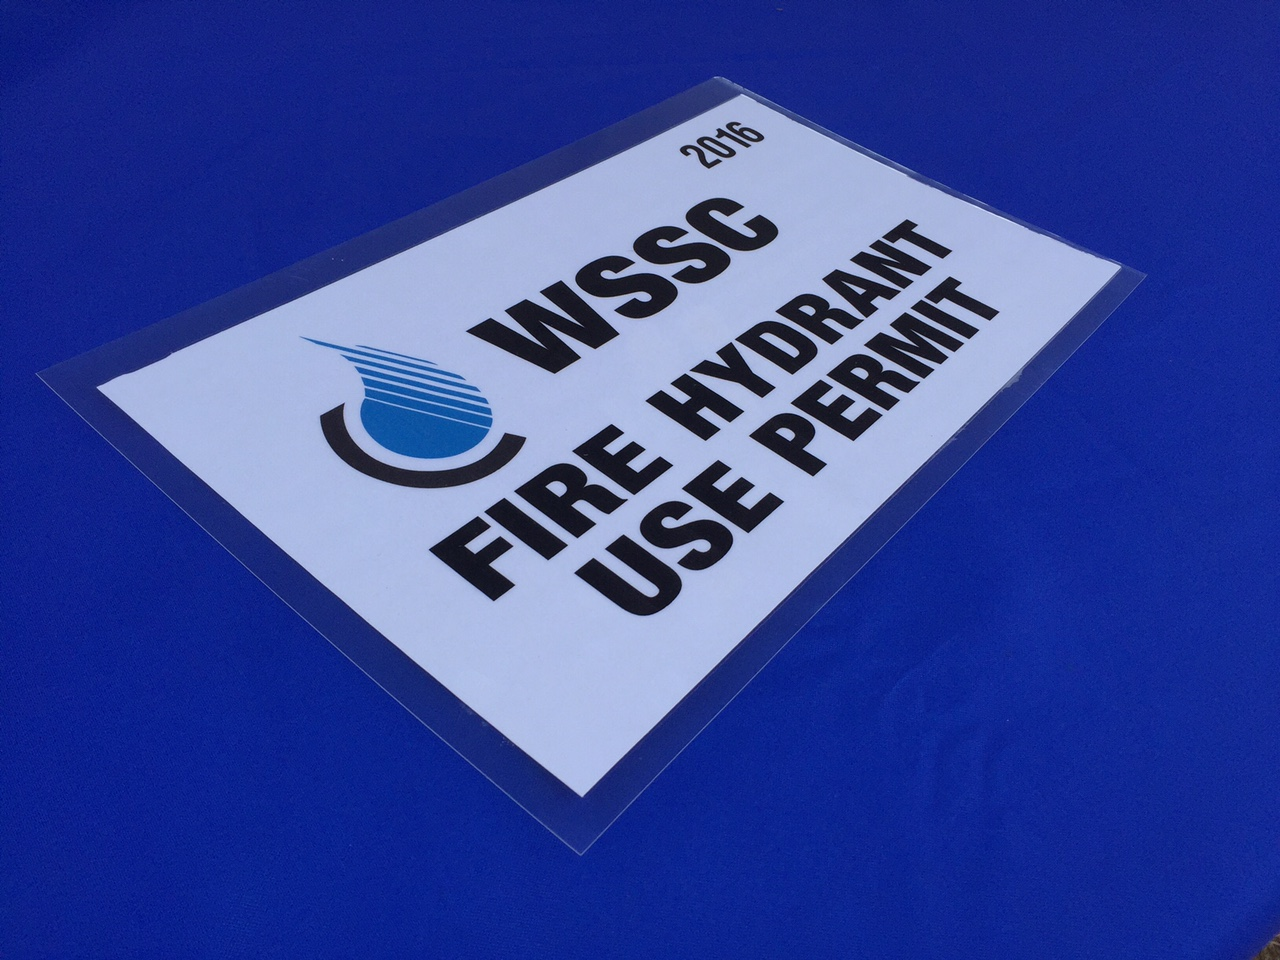 Water can be legally purchased from WSSC hydrants after leasing a meter and displaying a permit. (WTOP/Neal Augenstein)